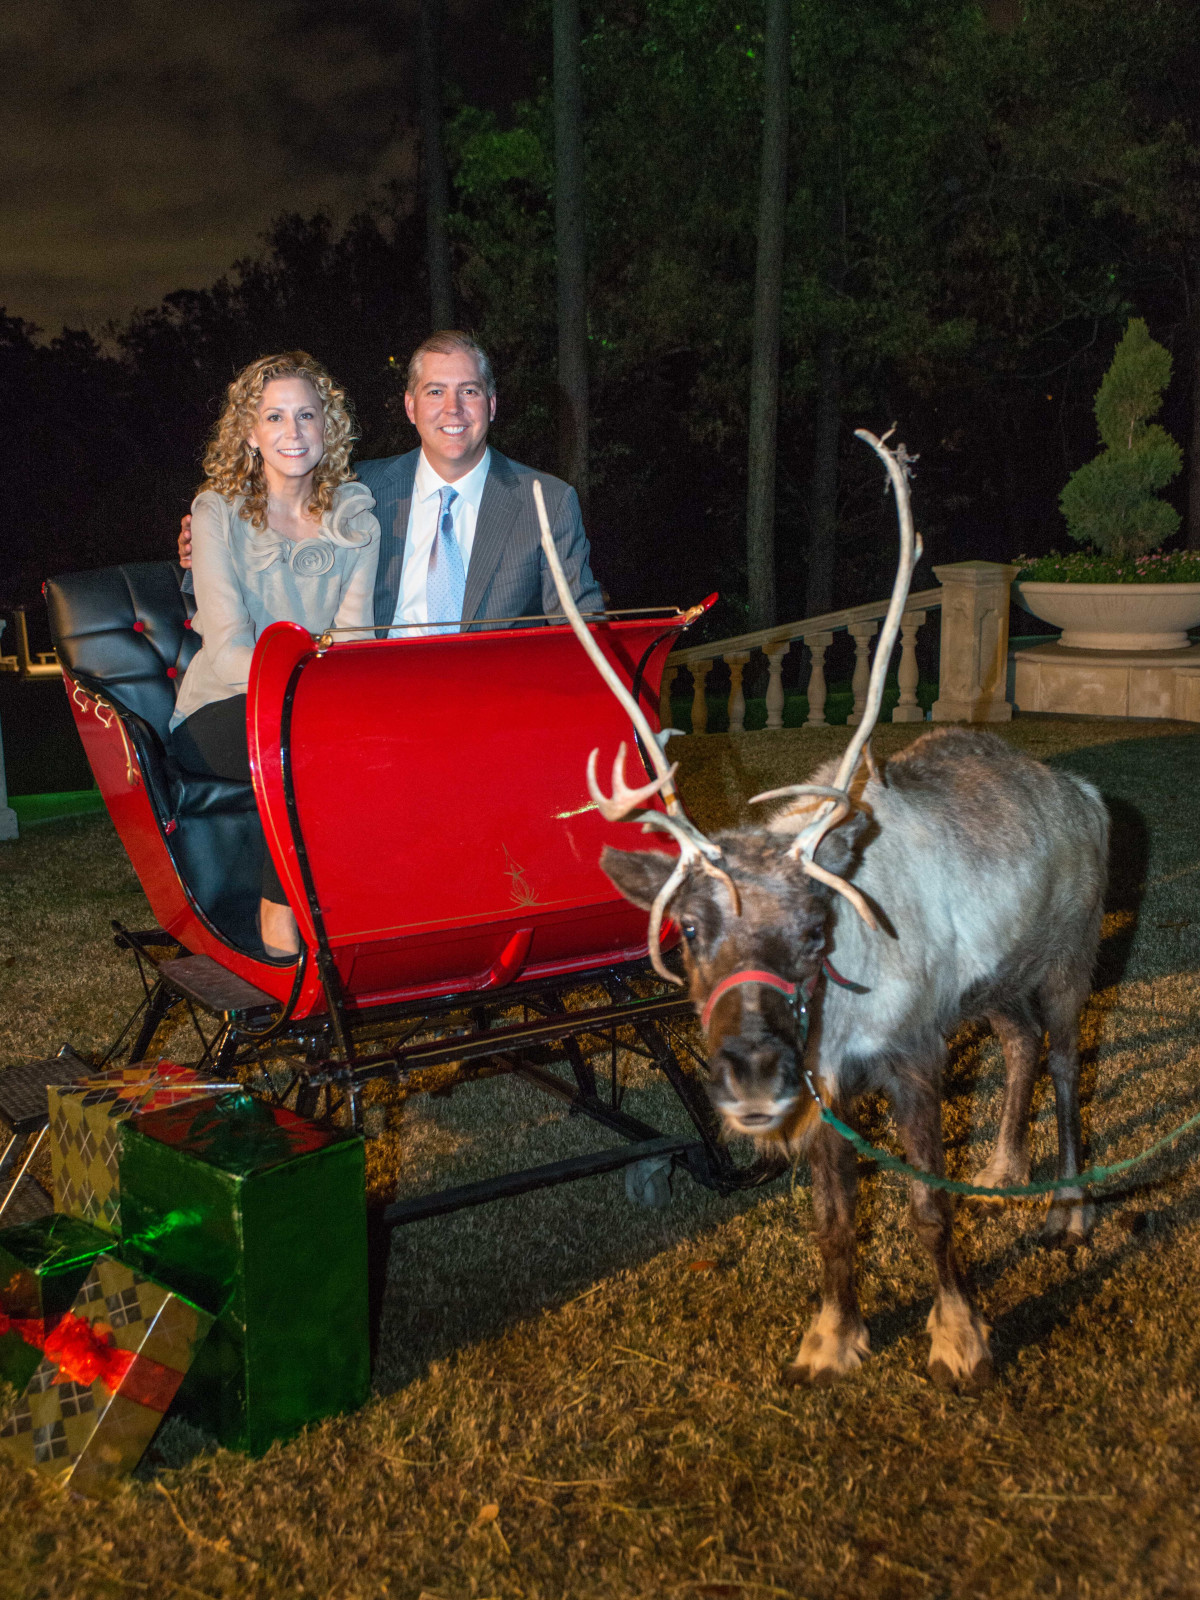 News, Shelby, MD Anderson Santa's Elves, Dec. 2015, Courtney Hill Fertitta, Jason Fertitta